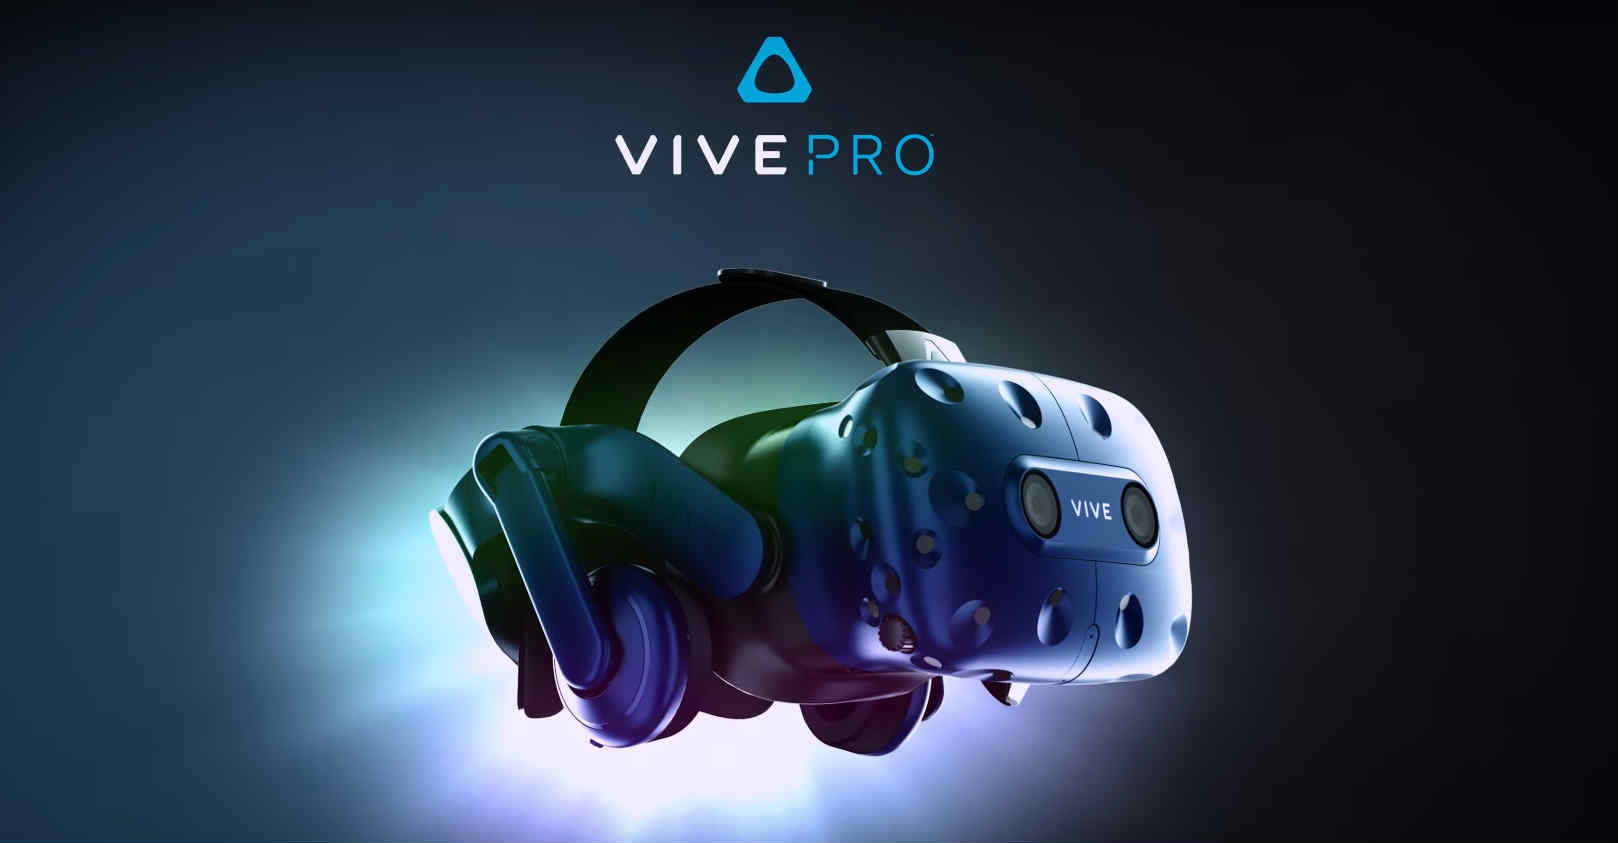 HTC upgrades VR experiences with new Vive Pro headset and Vive Wireless Adaptor